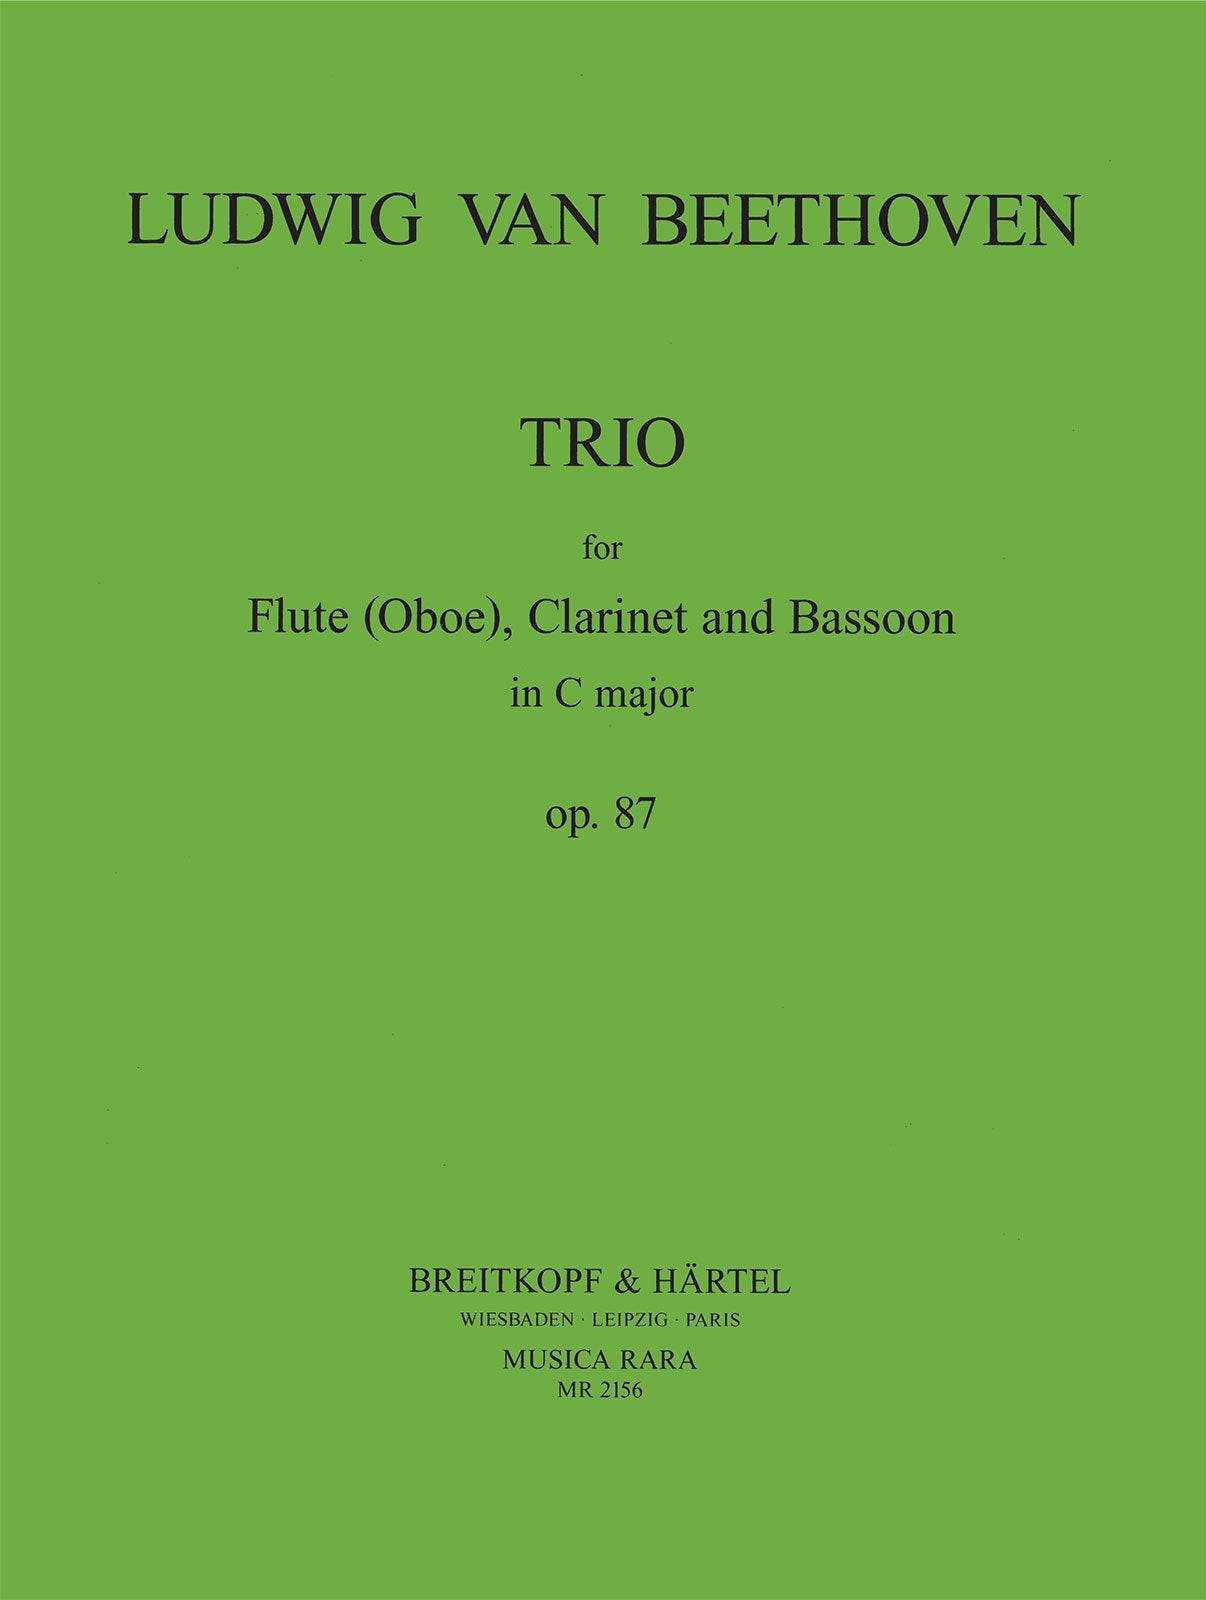 Beethoven: Trio, Op. 87 (arr. for flute/oboe, clarinet & bassoon)